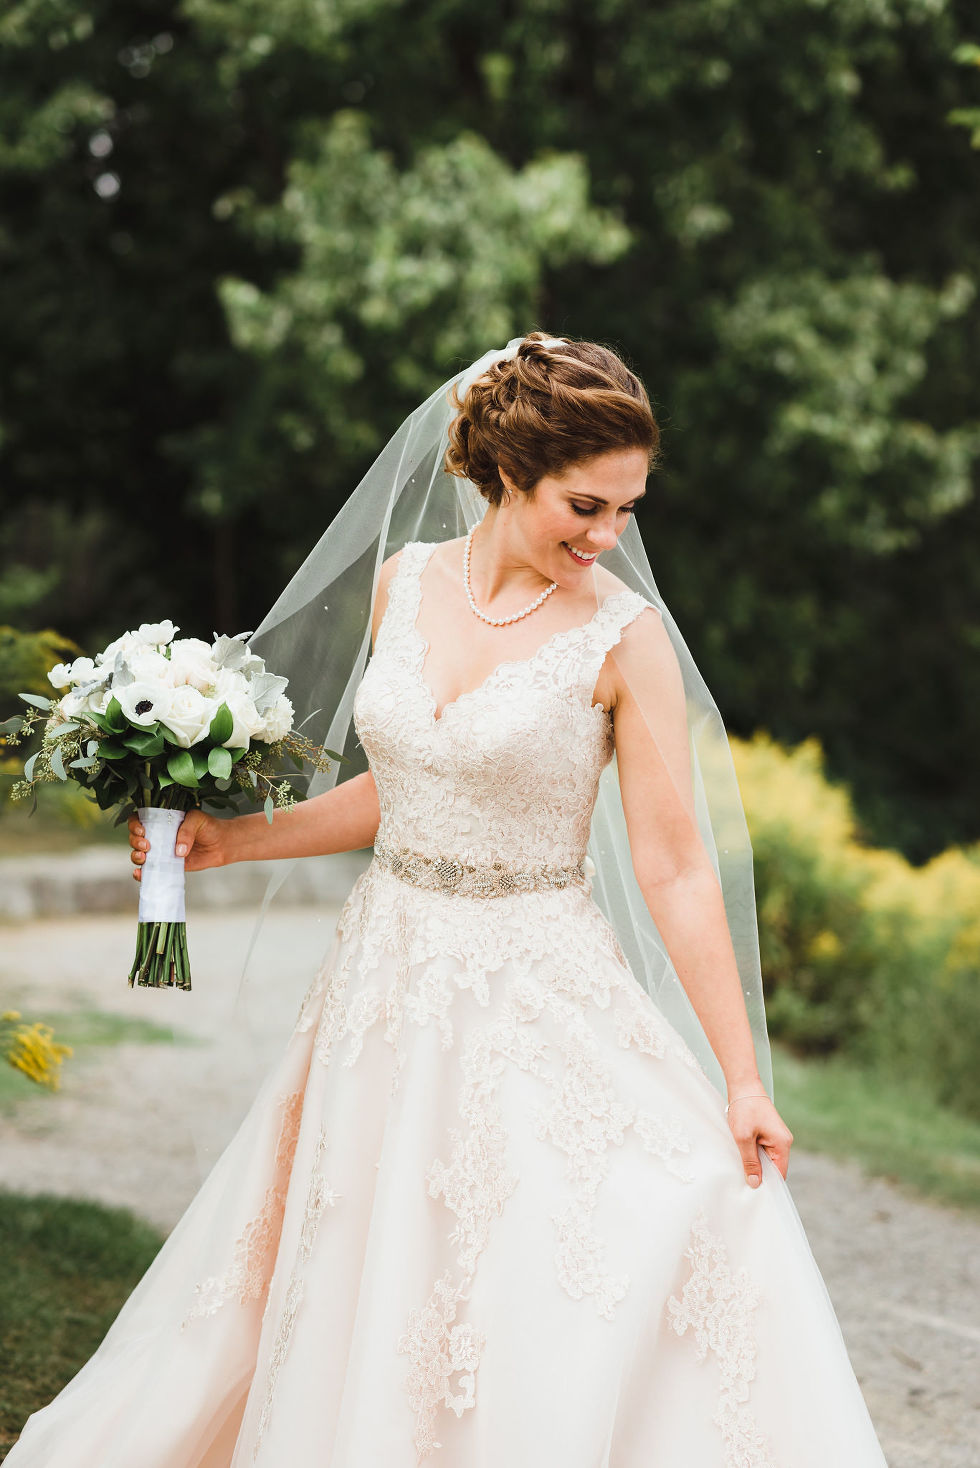 bride pulling at the side of her wedding dress and holding a white floral bouquet in the other hand after no first look wedding ceremony at La Paletta Mansion in Burlington Ontario